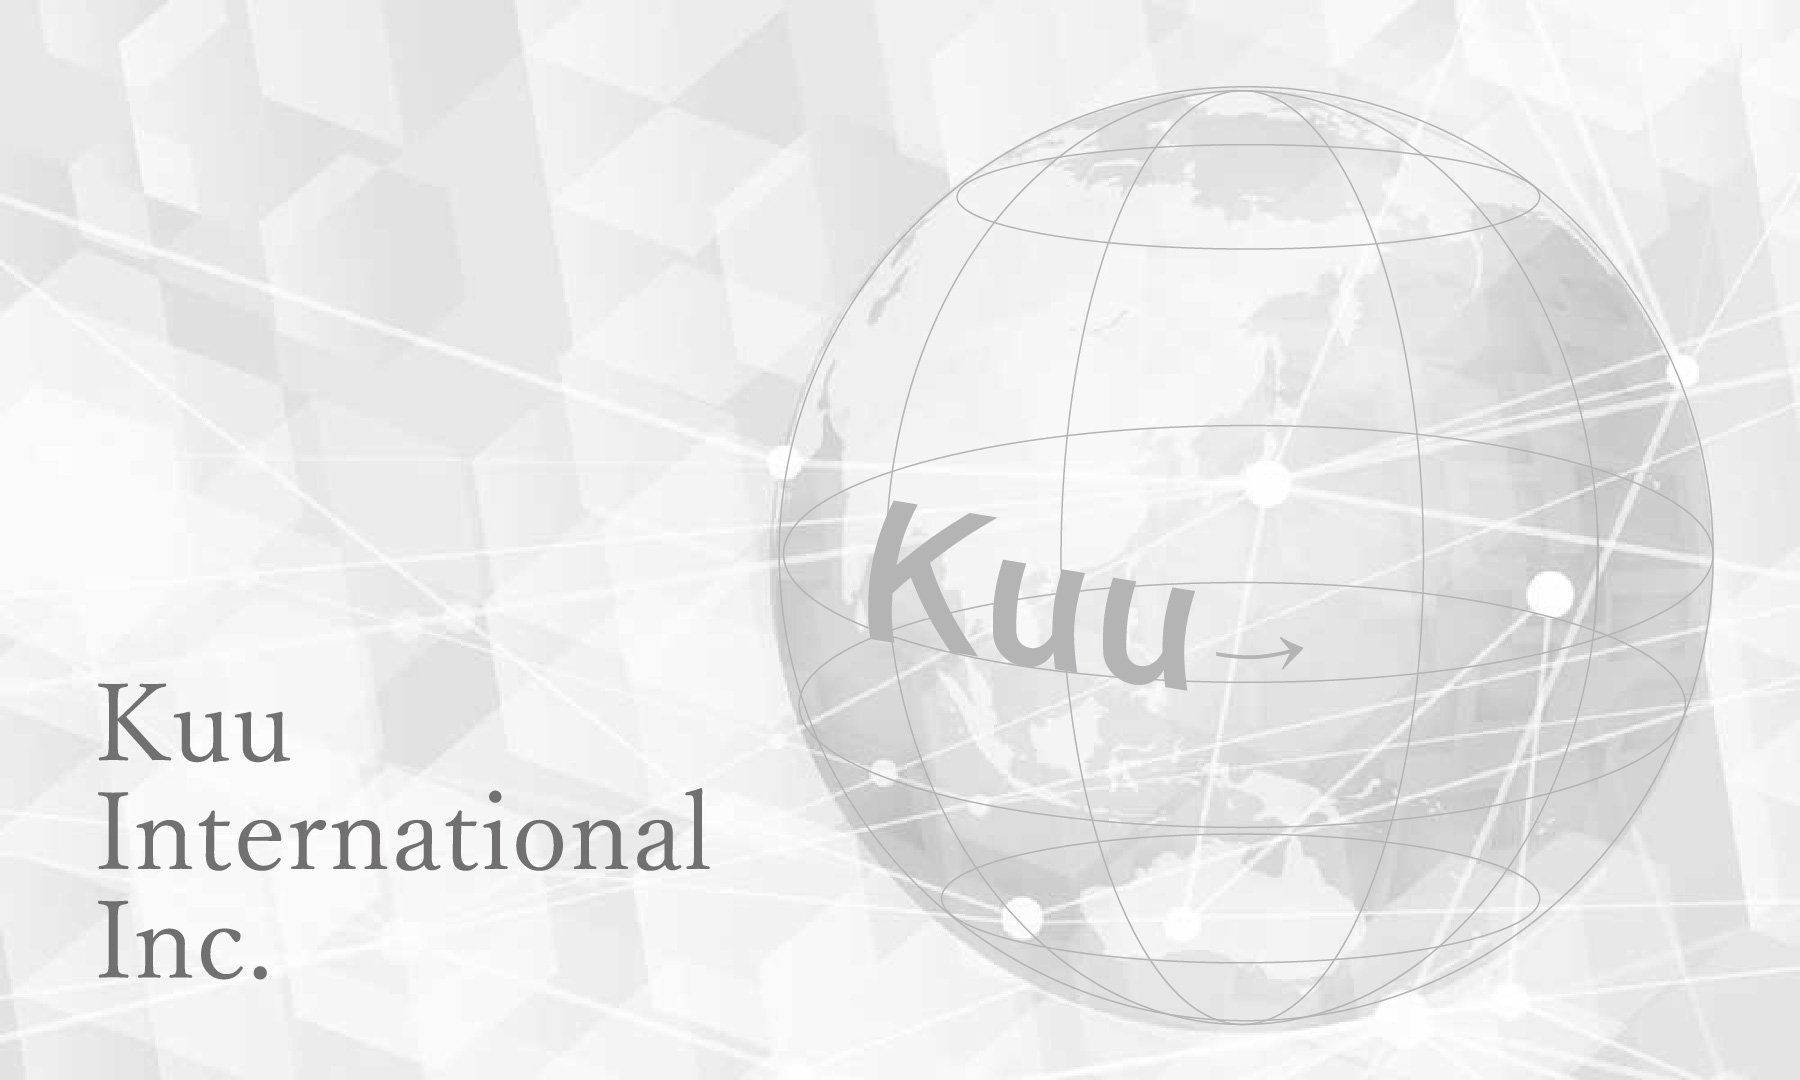 Kuu International Inc.